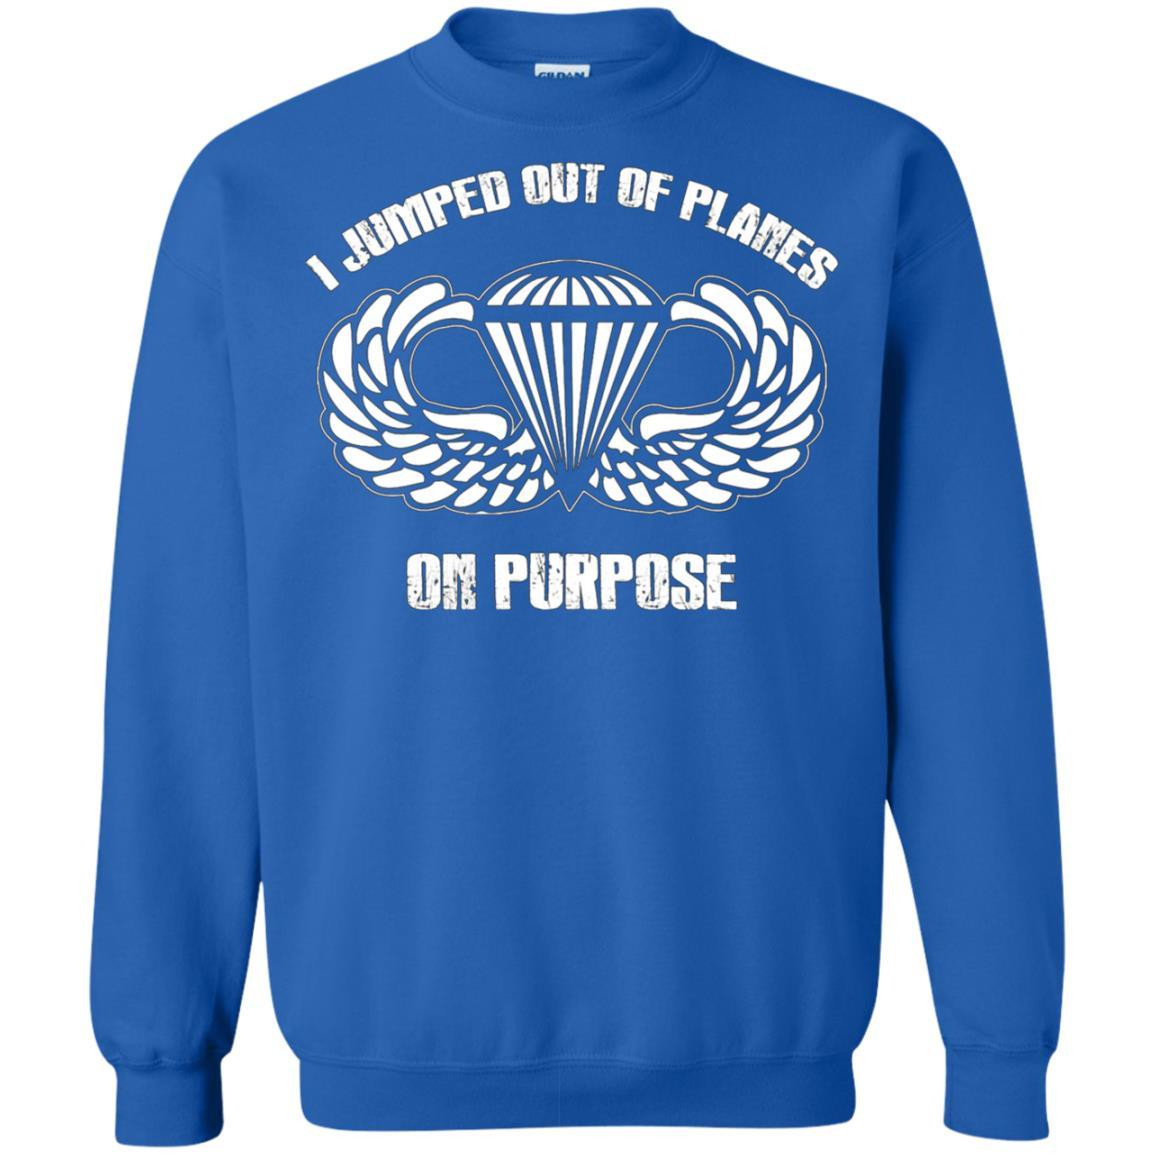 I jumped out of planes on purpose, Airborne - Crewneck Pullover Sweatshirt Royal / 5XL